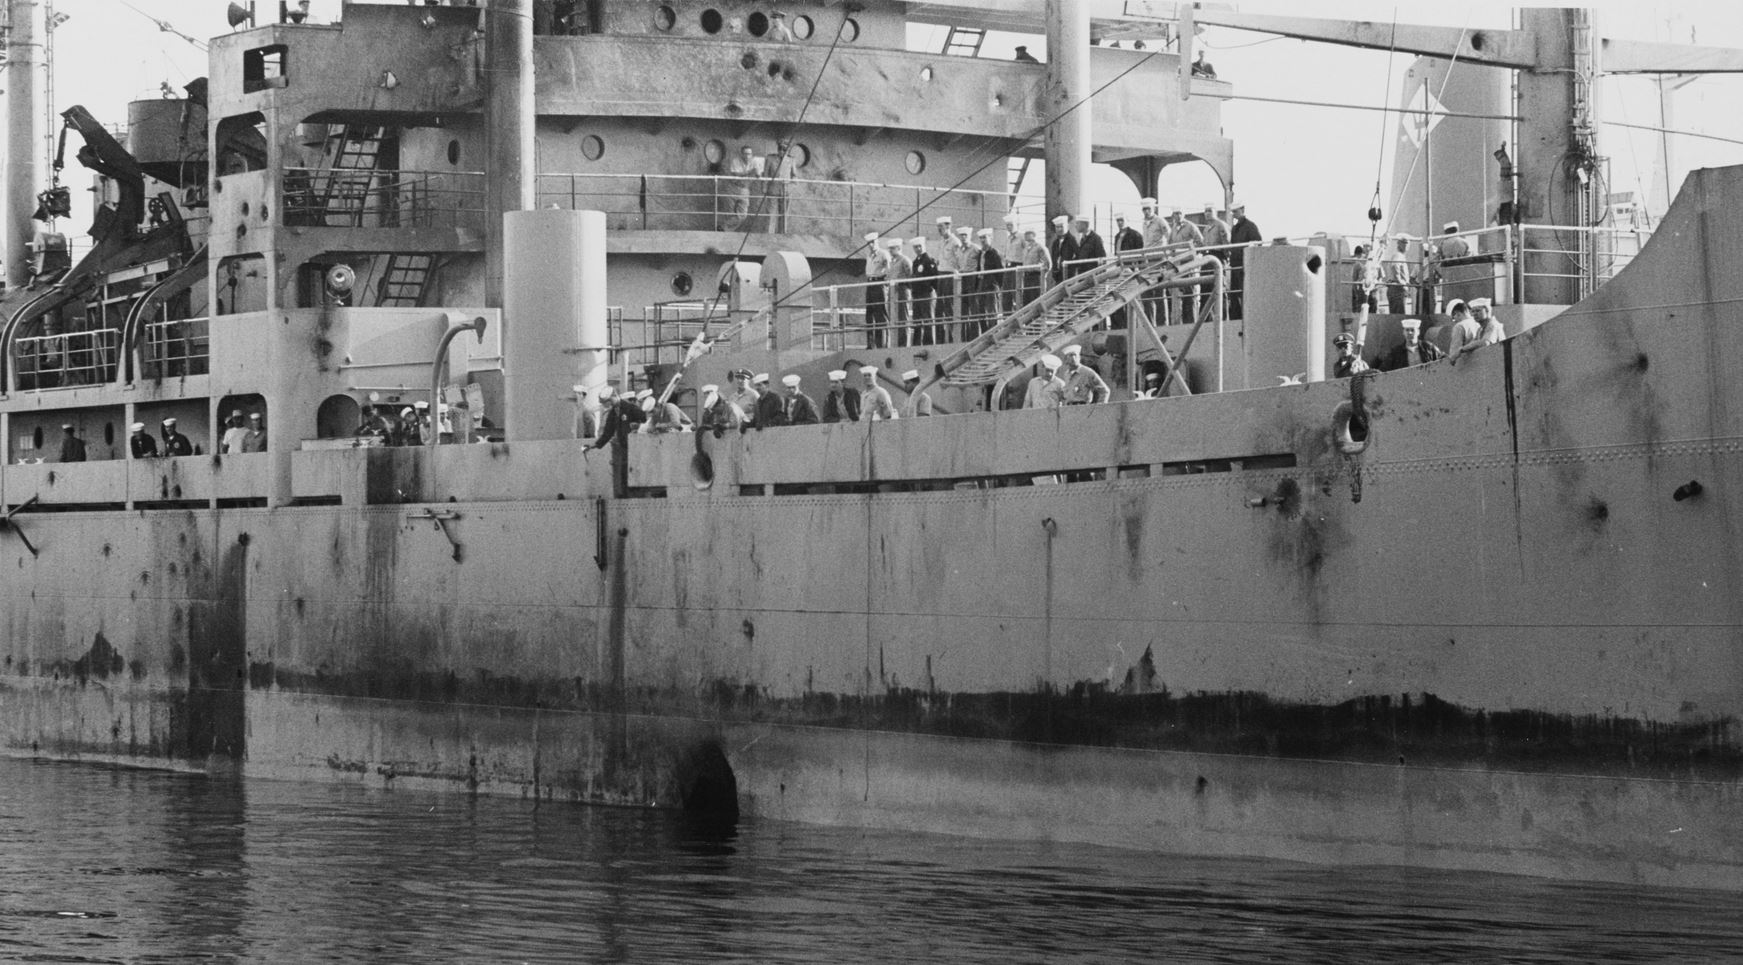 The USS Liberty: A Test For Americans